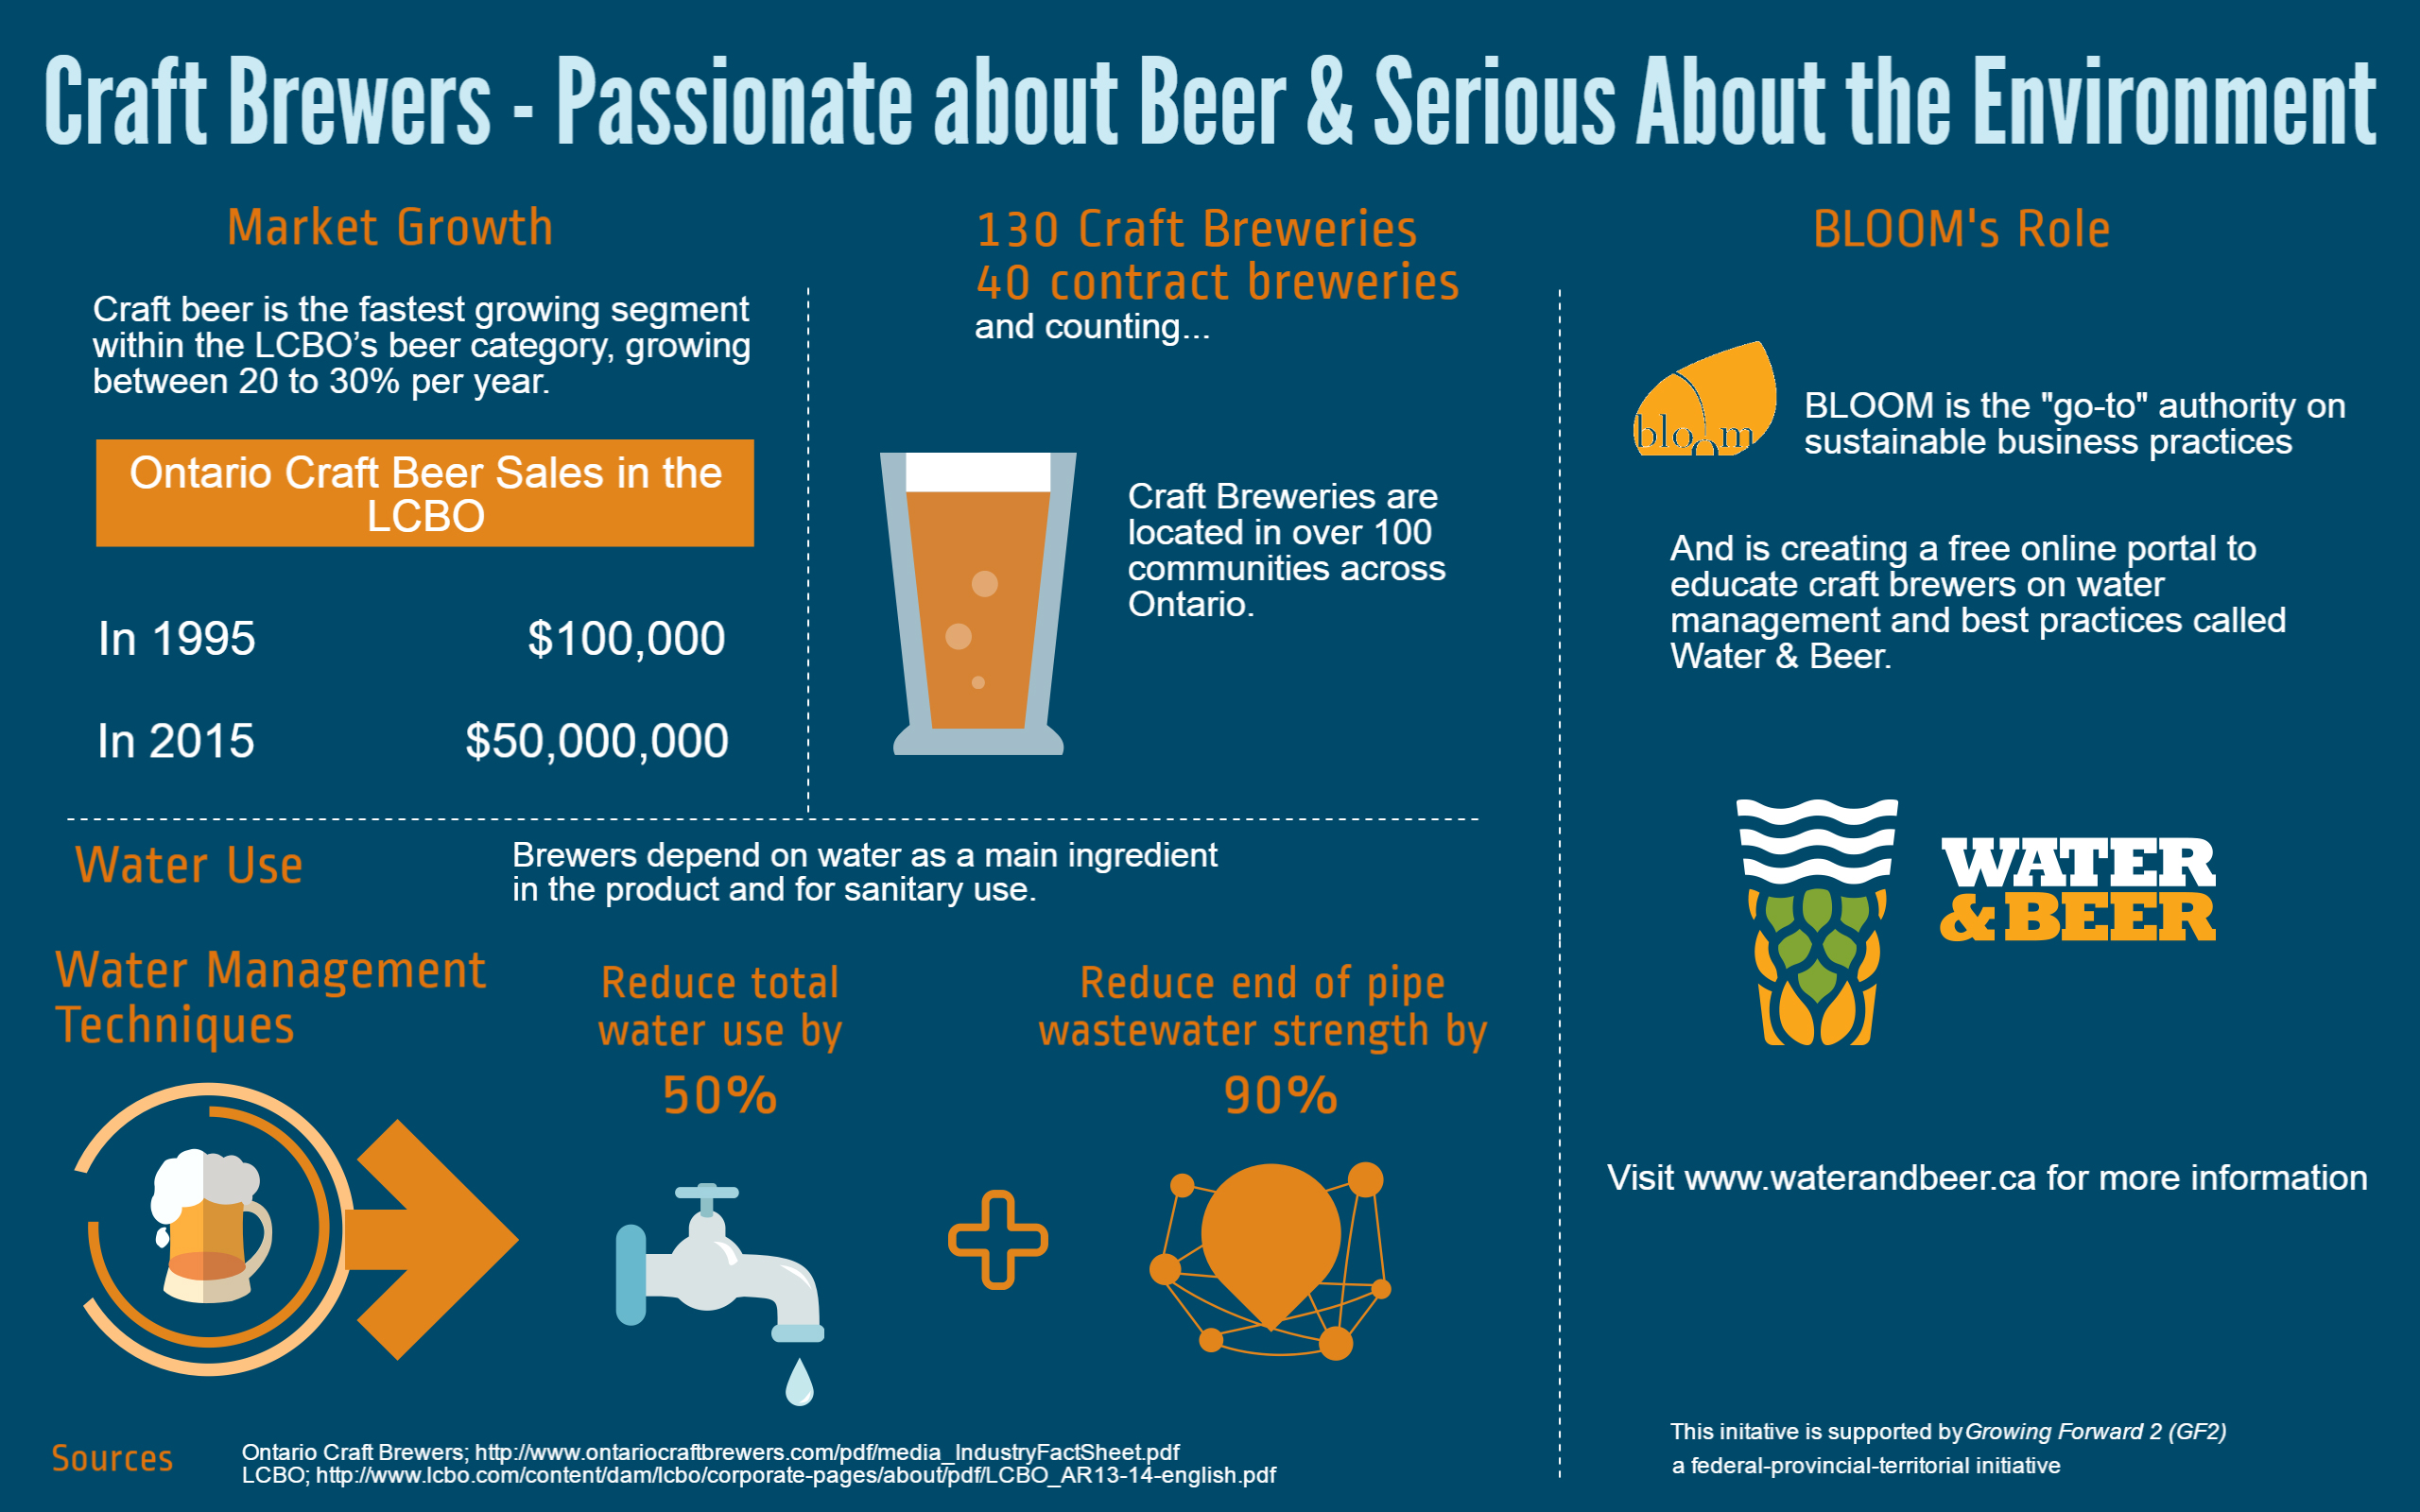 Craft Brewers – Passionate About Beer & Serious About the Environment